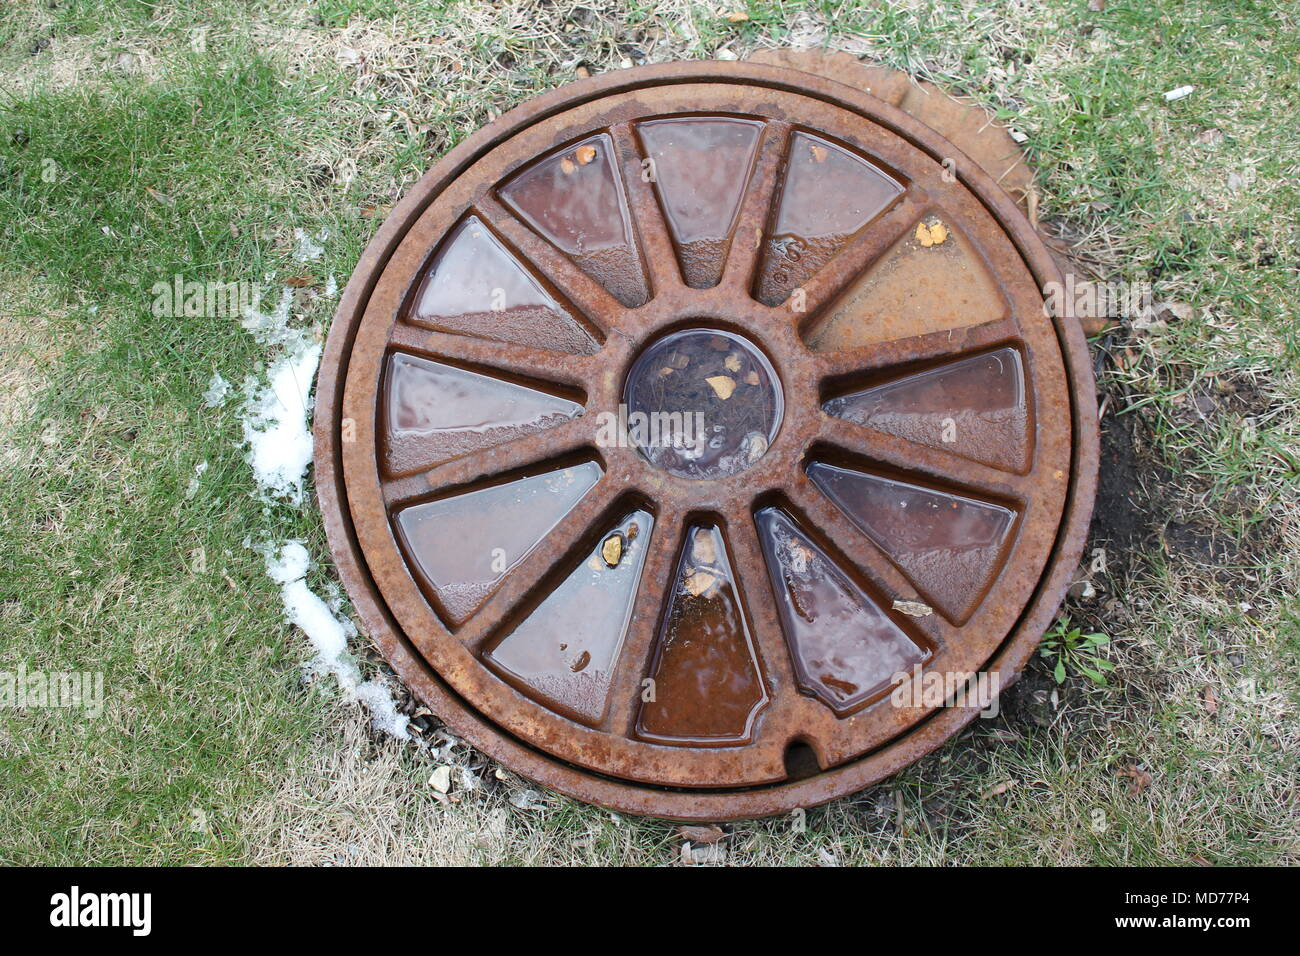 Decorative manhole cover for access to underground utilities. - Stock Image